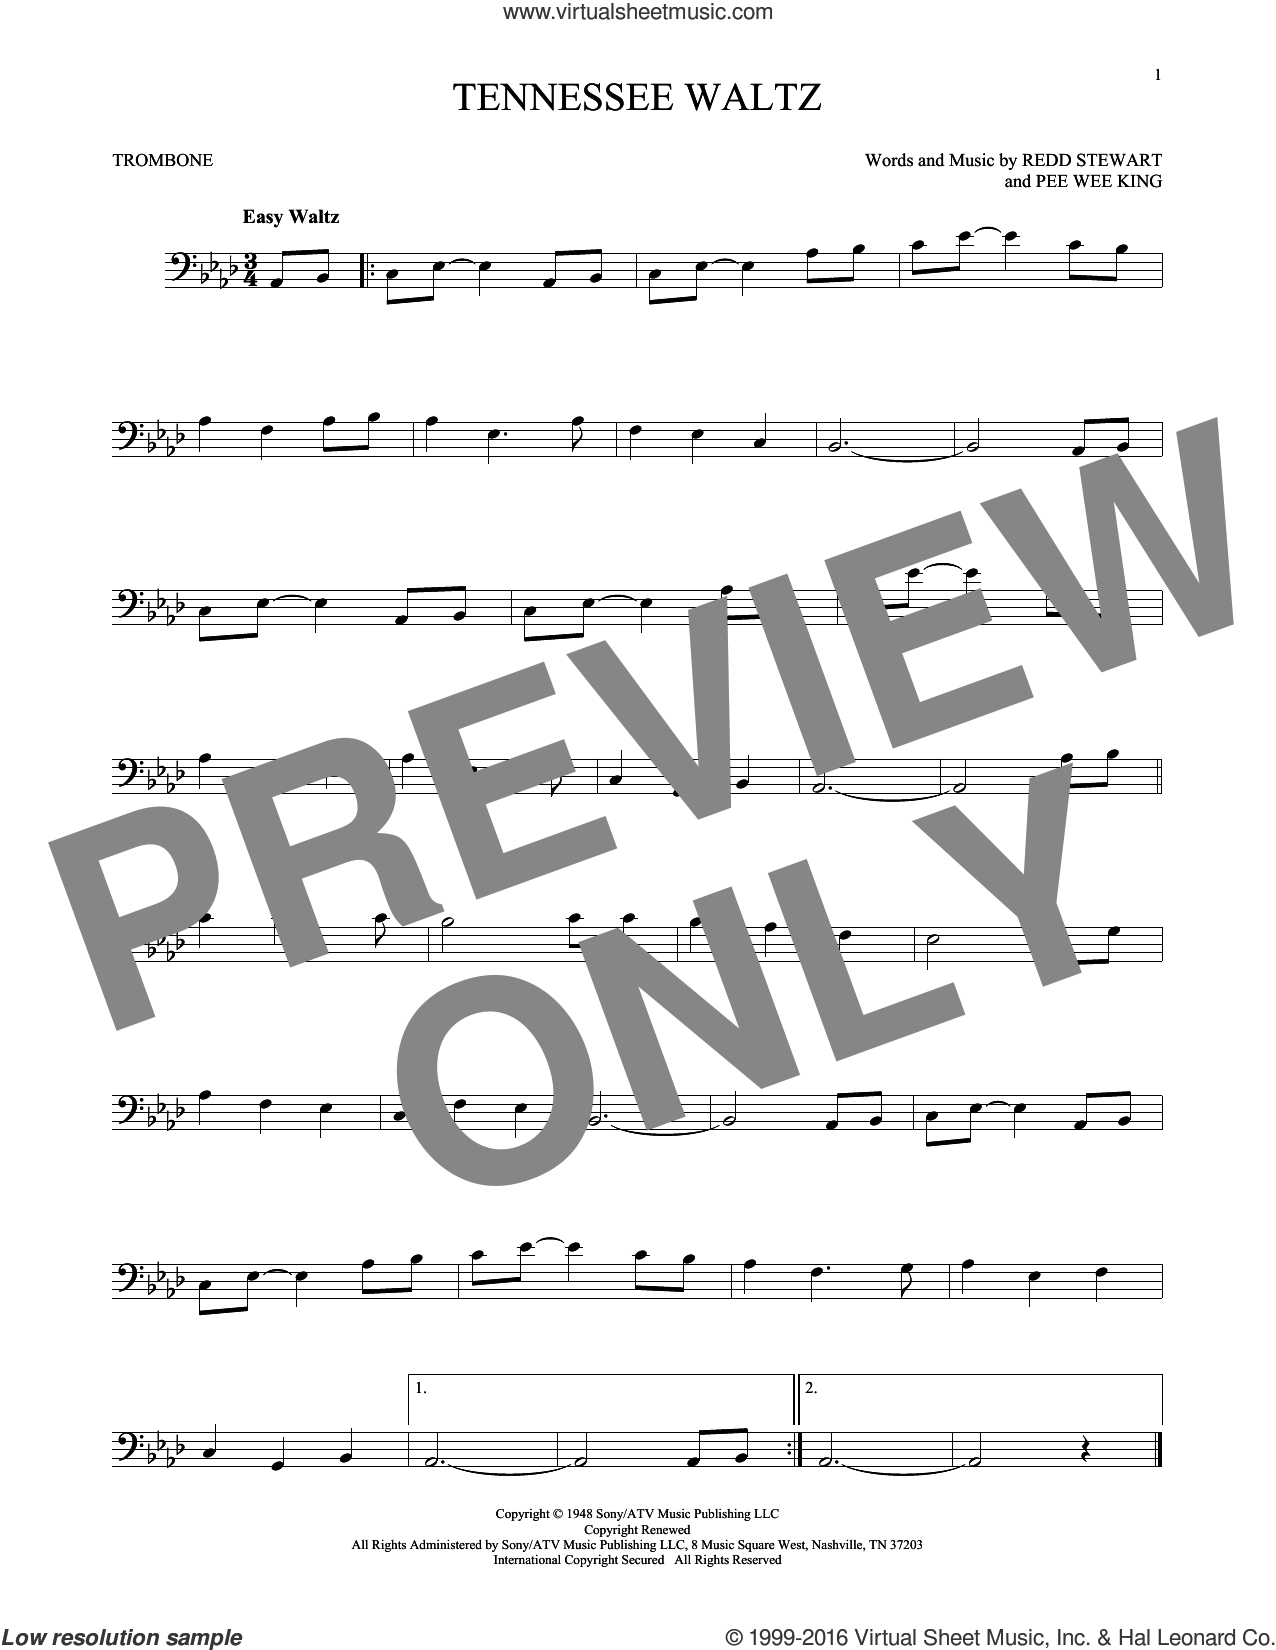 Tennessee Waltz sheet music for trombone solo by Pee Wee King, Patti Page, Patty Page and Redd Stewart, intermediate skill level